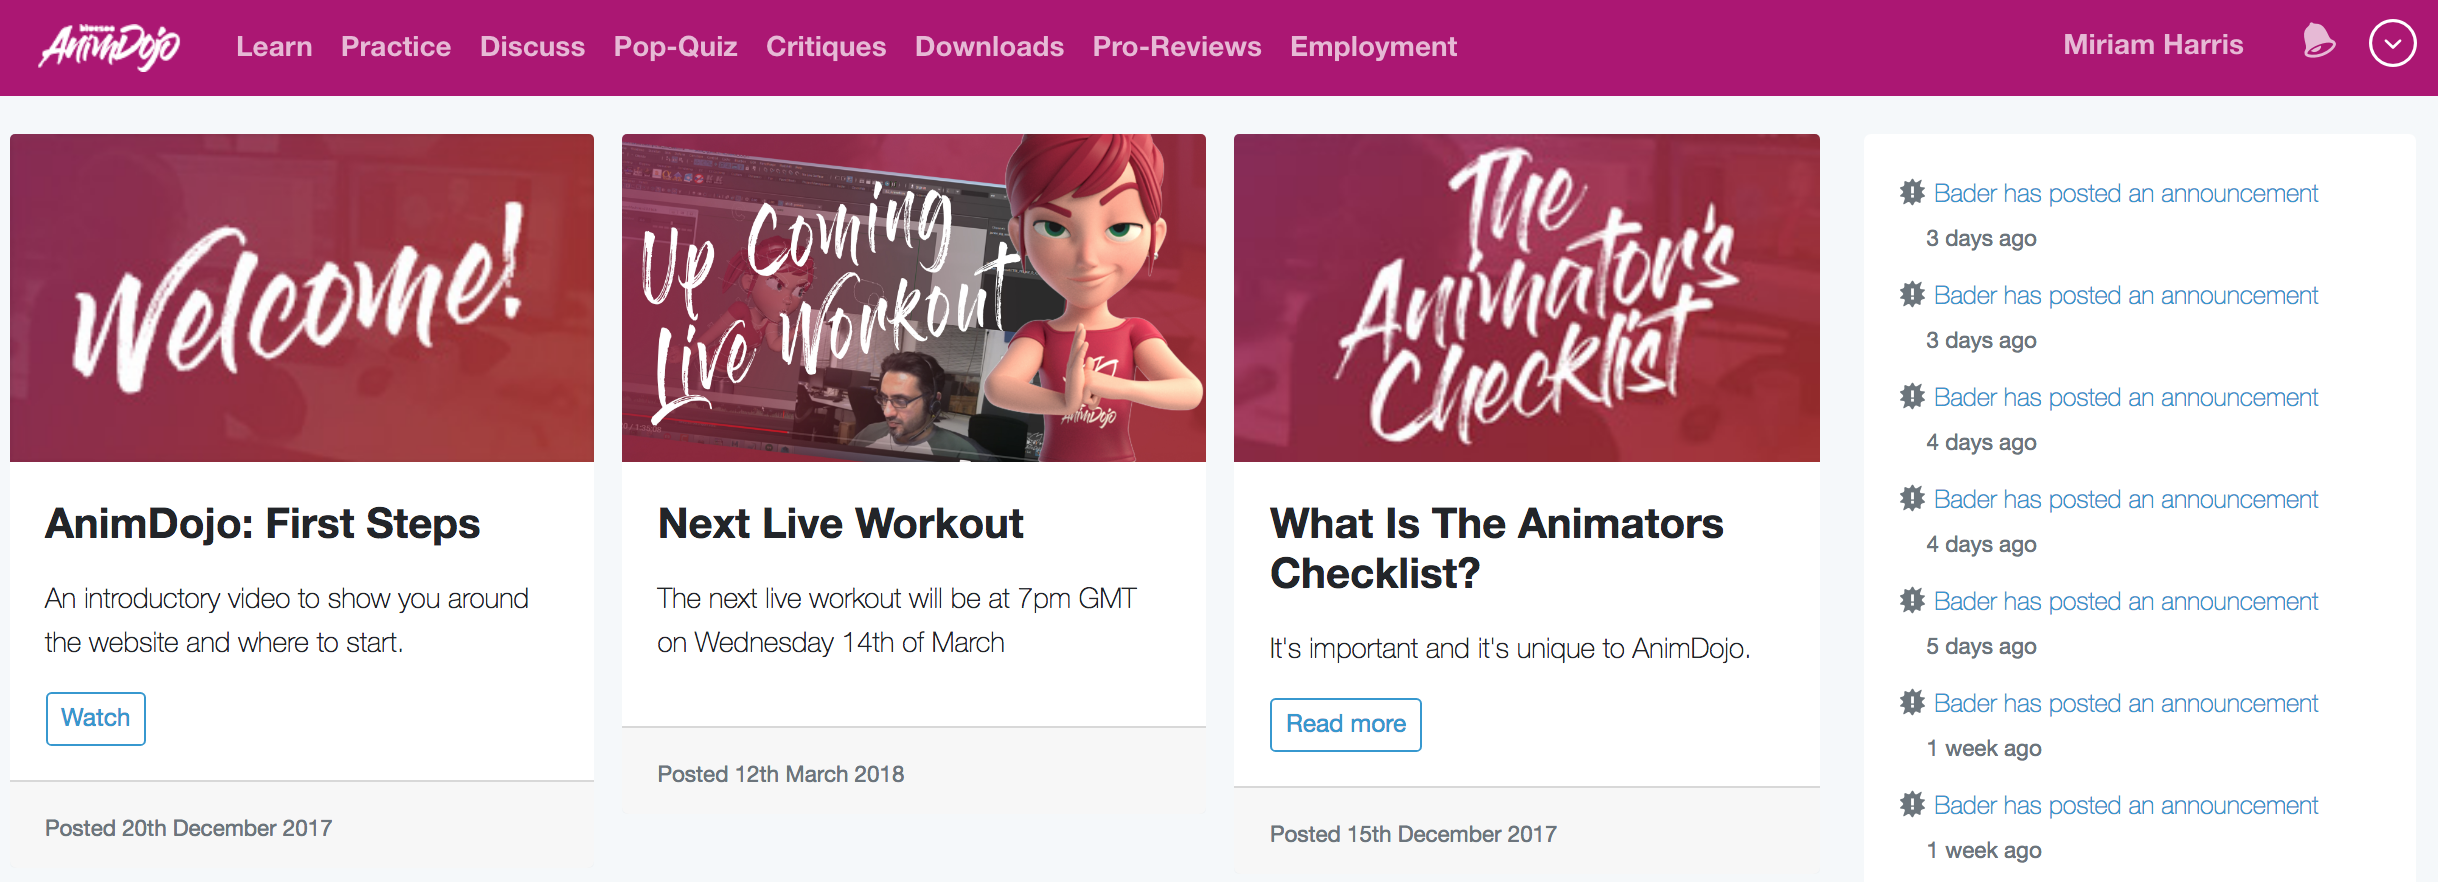 Best websites and online tools for learning animation